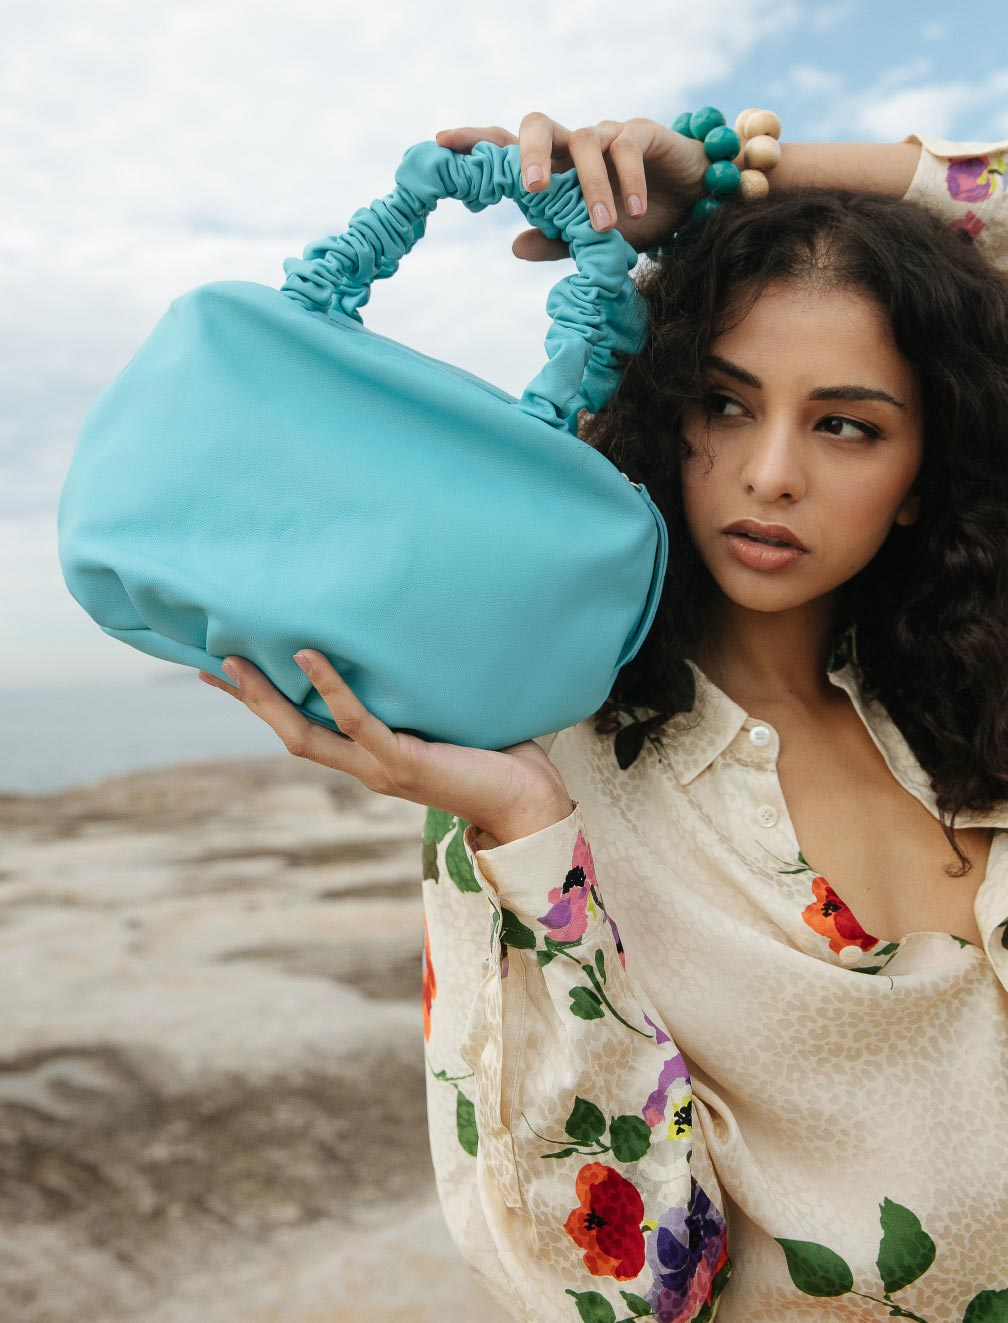 Shop women's designer bags at Camargue.